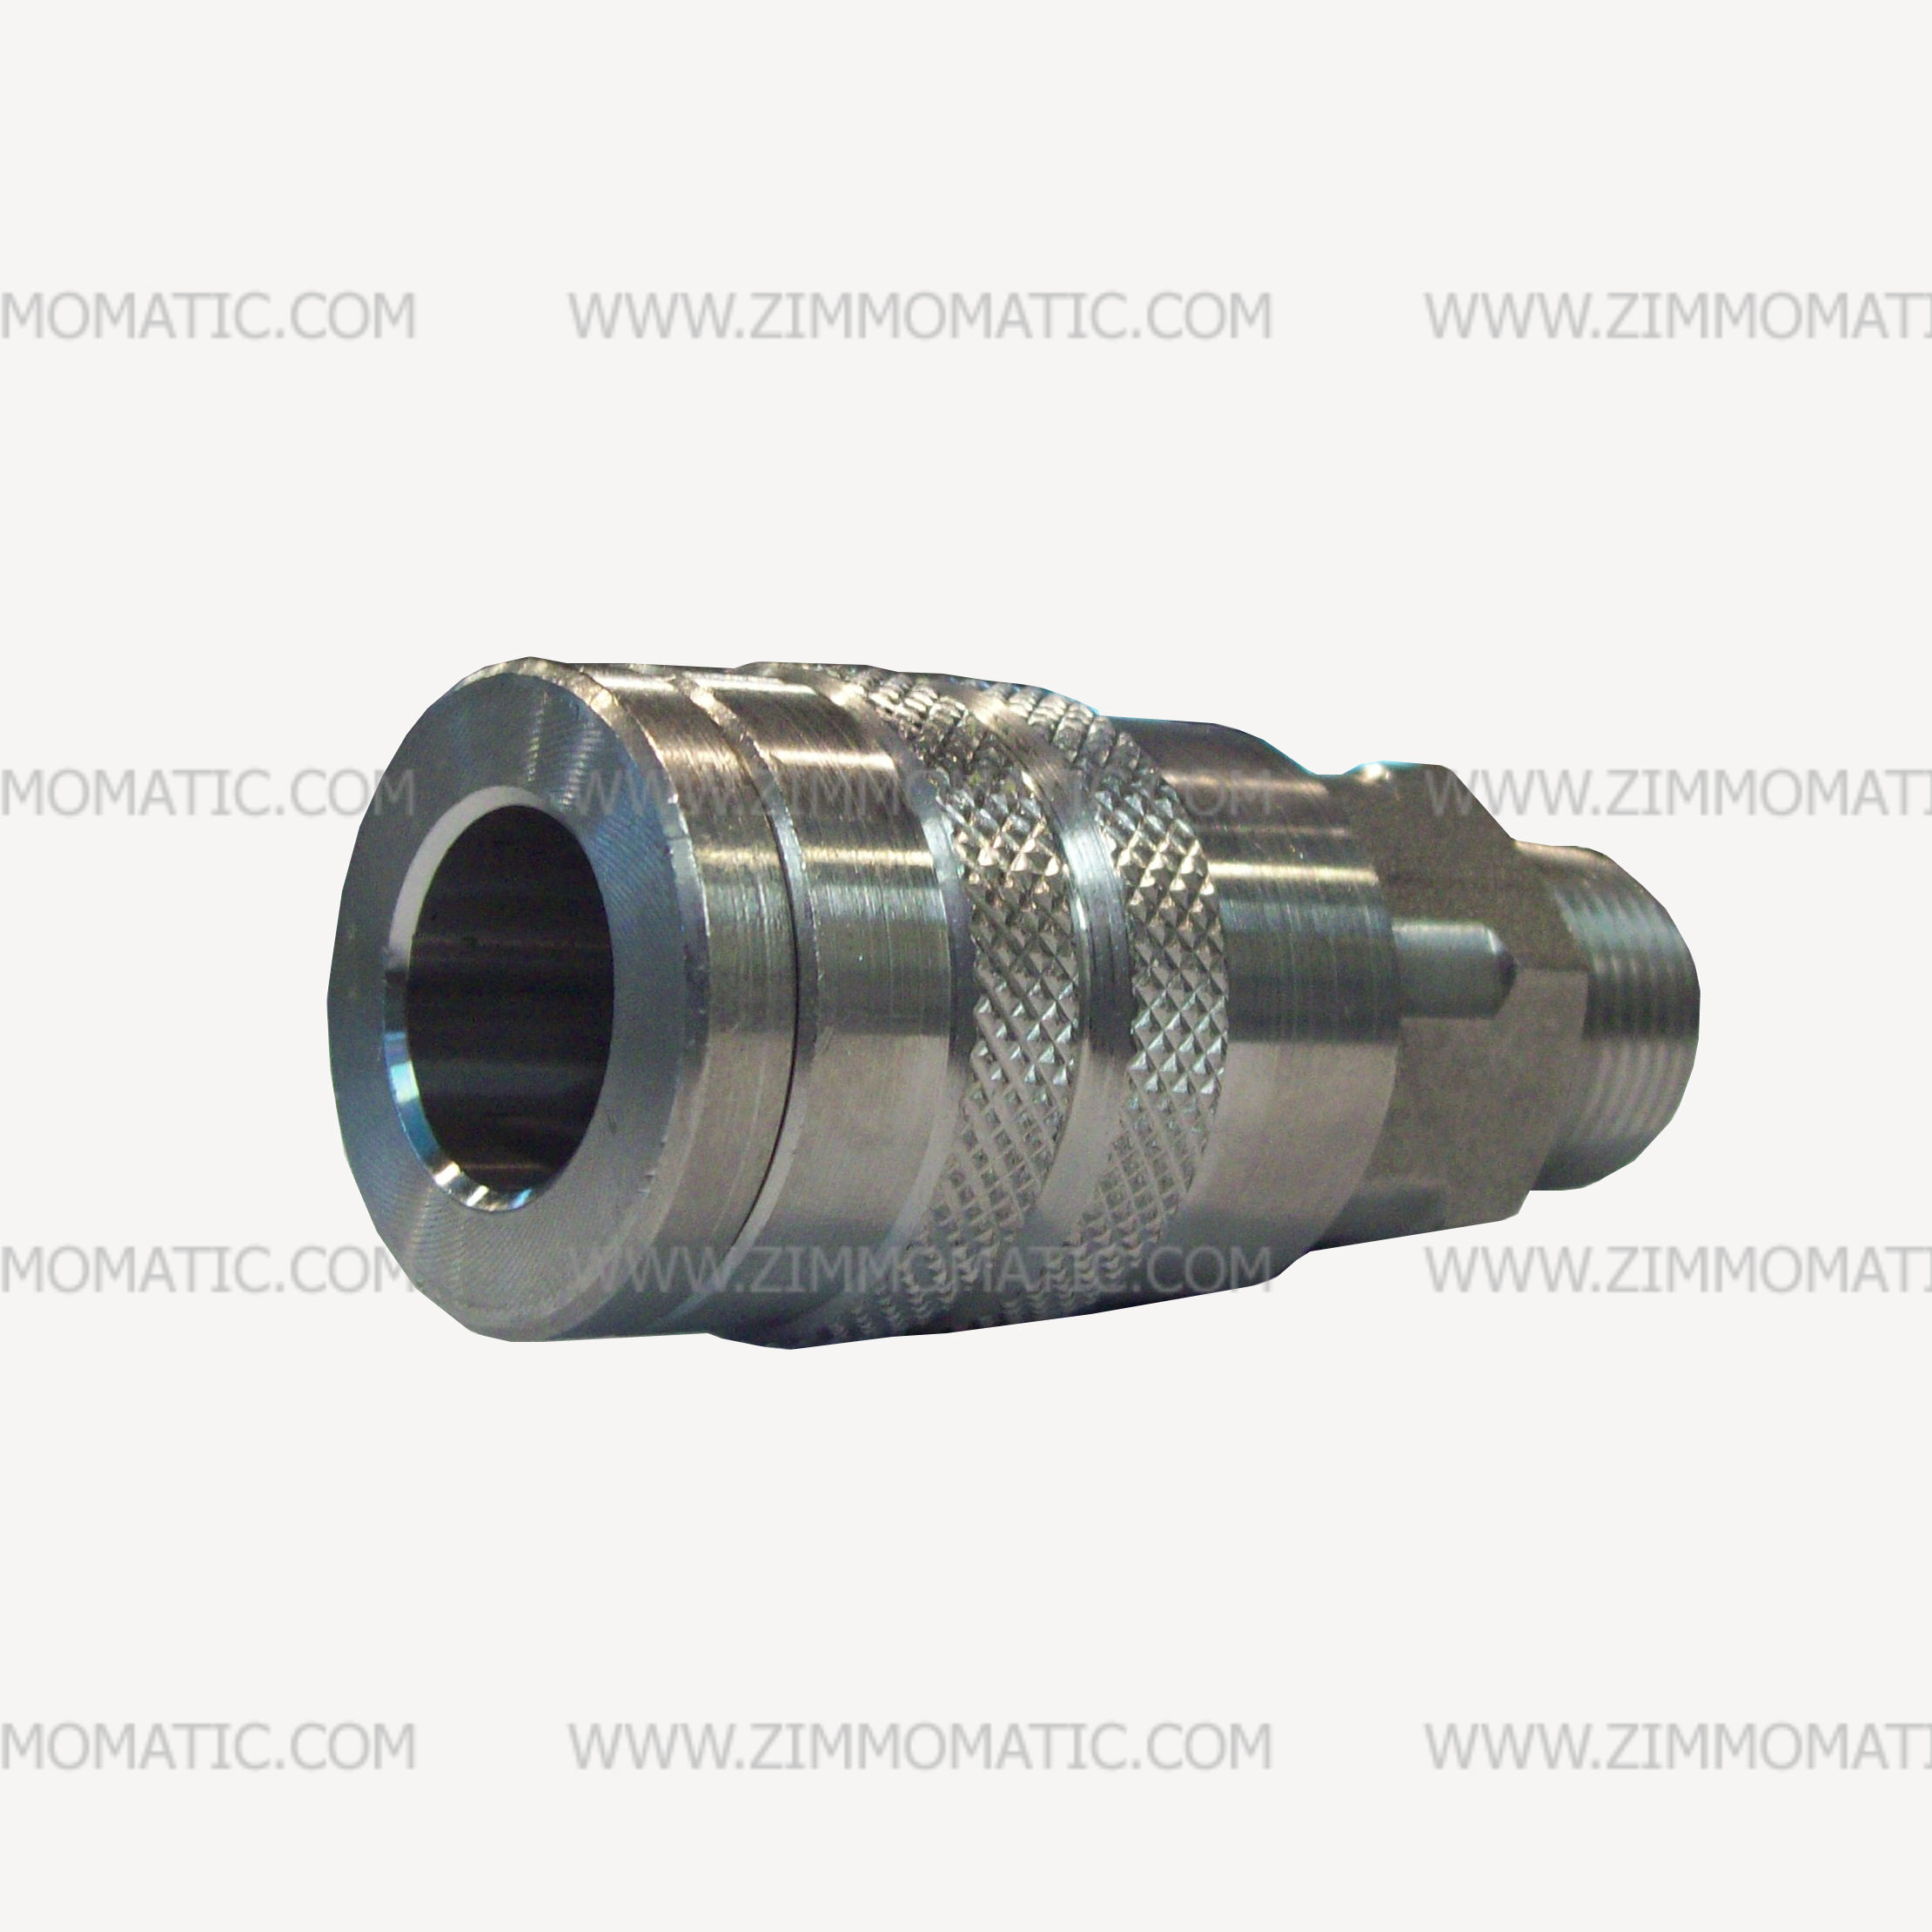 stainless steel quick coupler, 1/2 inch, female socket, male thread